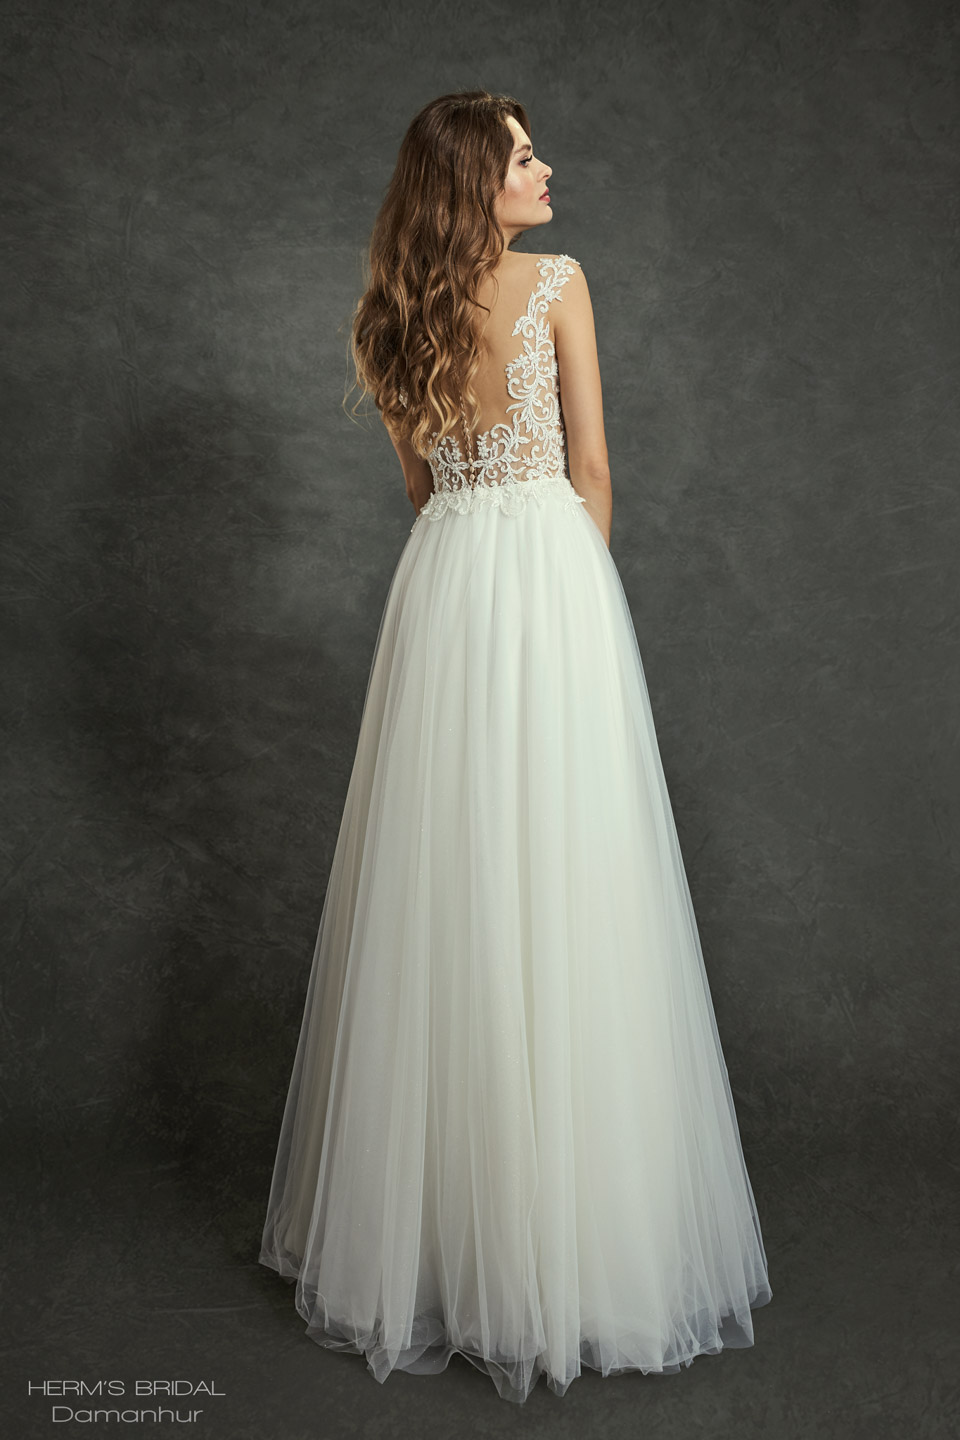 suknia slubna herms bridal Damanhur 3